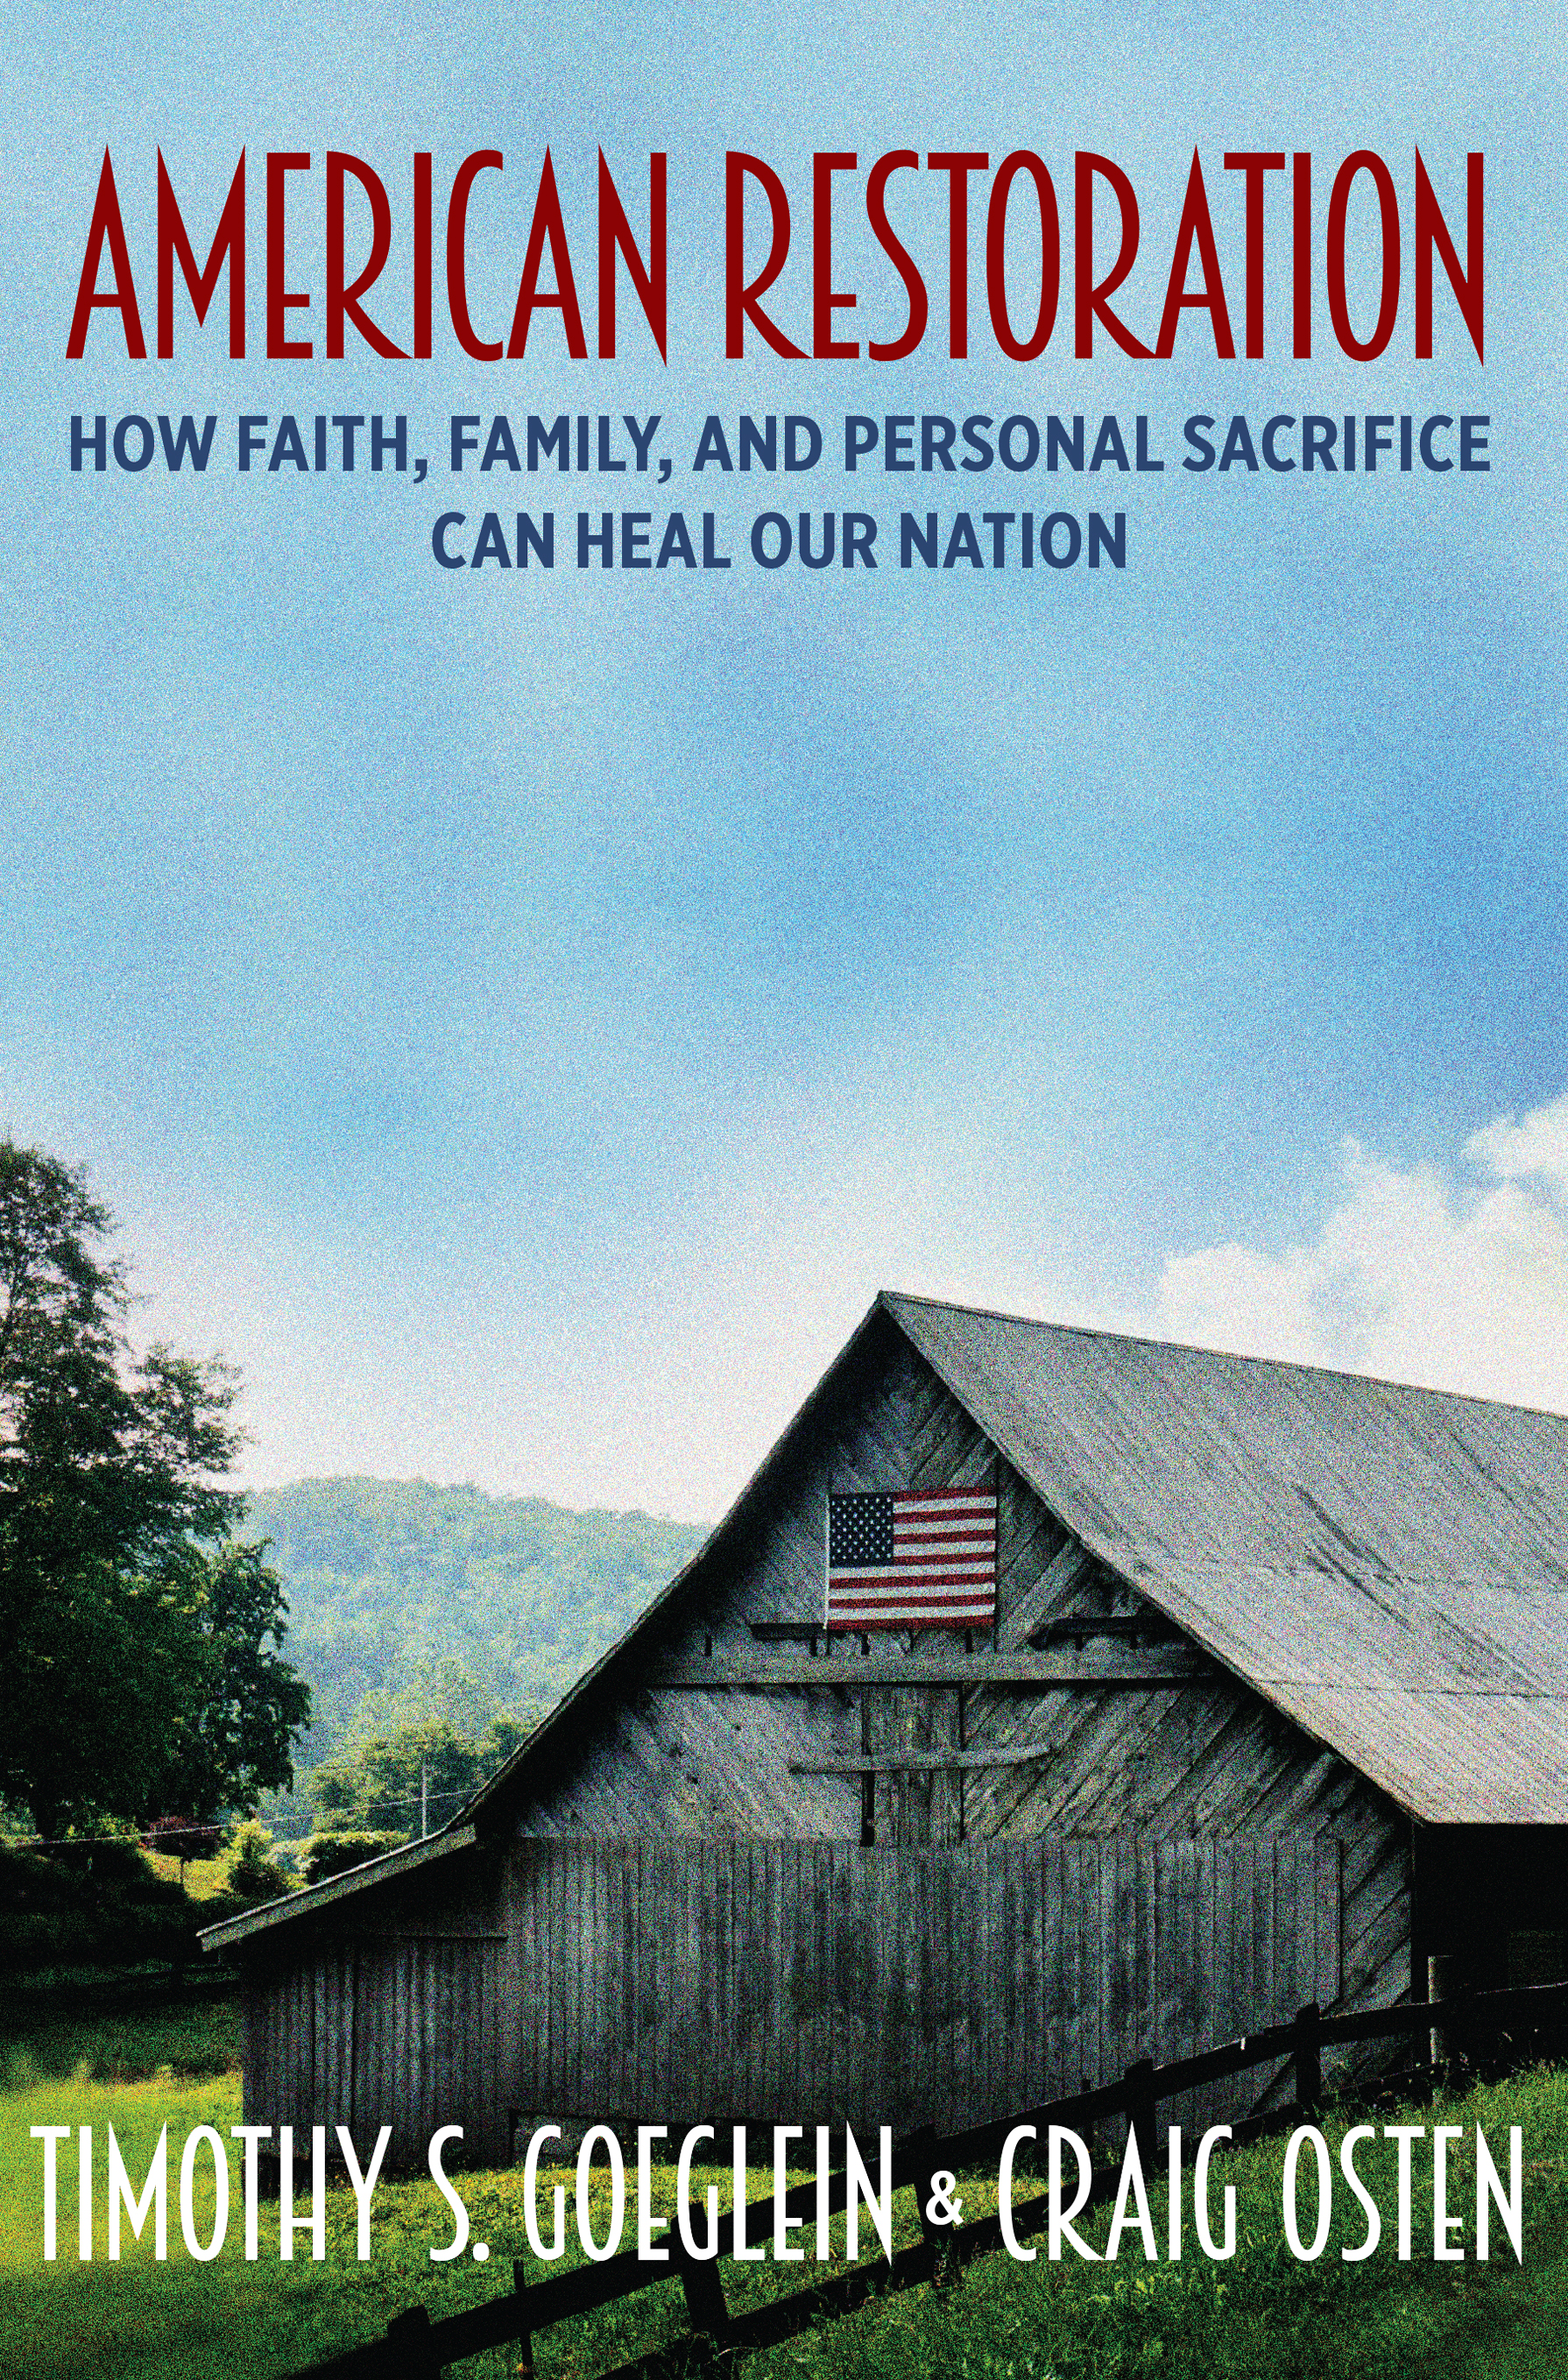 Cover photo of American Restoration. Photo courtesy of Regnery Publishing.